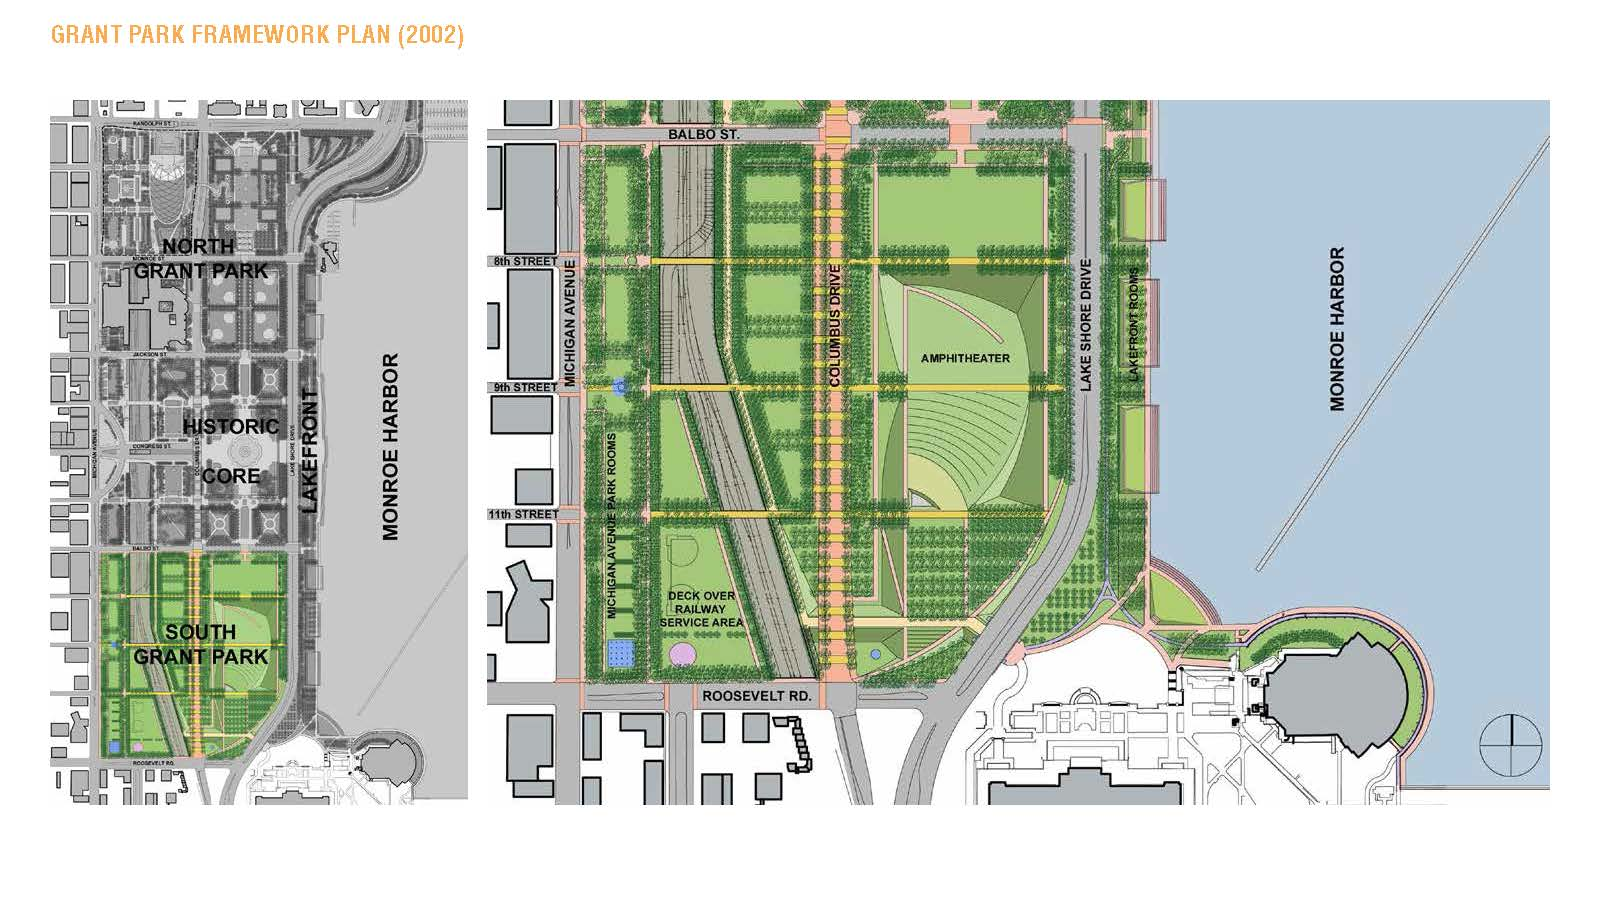 7741_20160713_South Grant Park Charrette Presentation_low res_Page_30.jpg